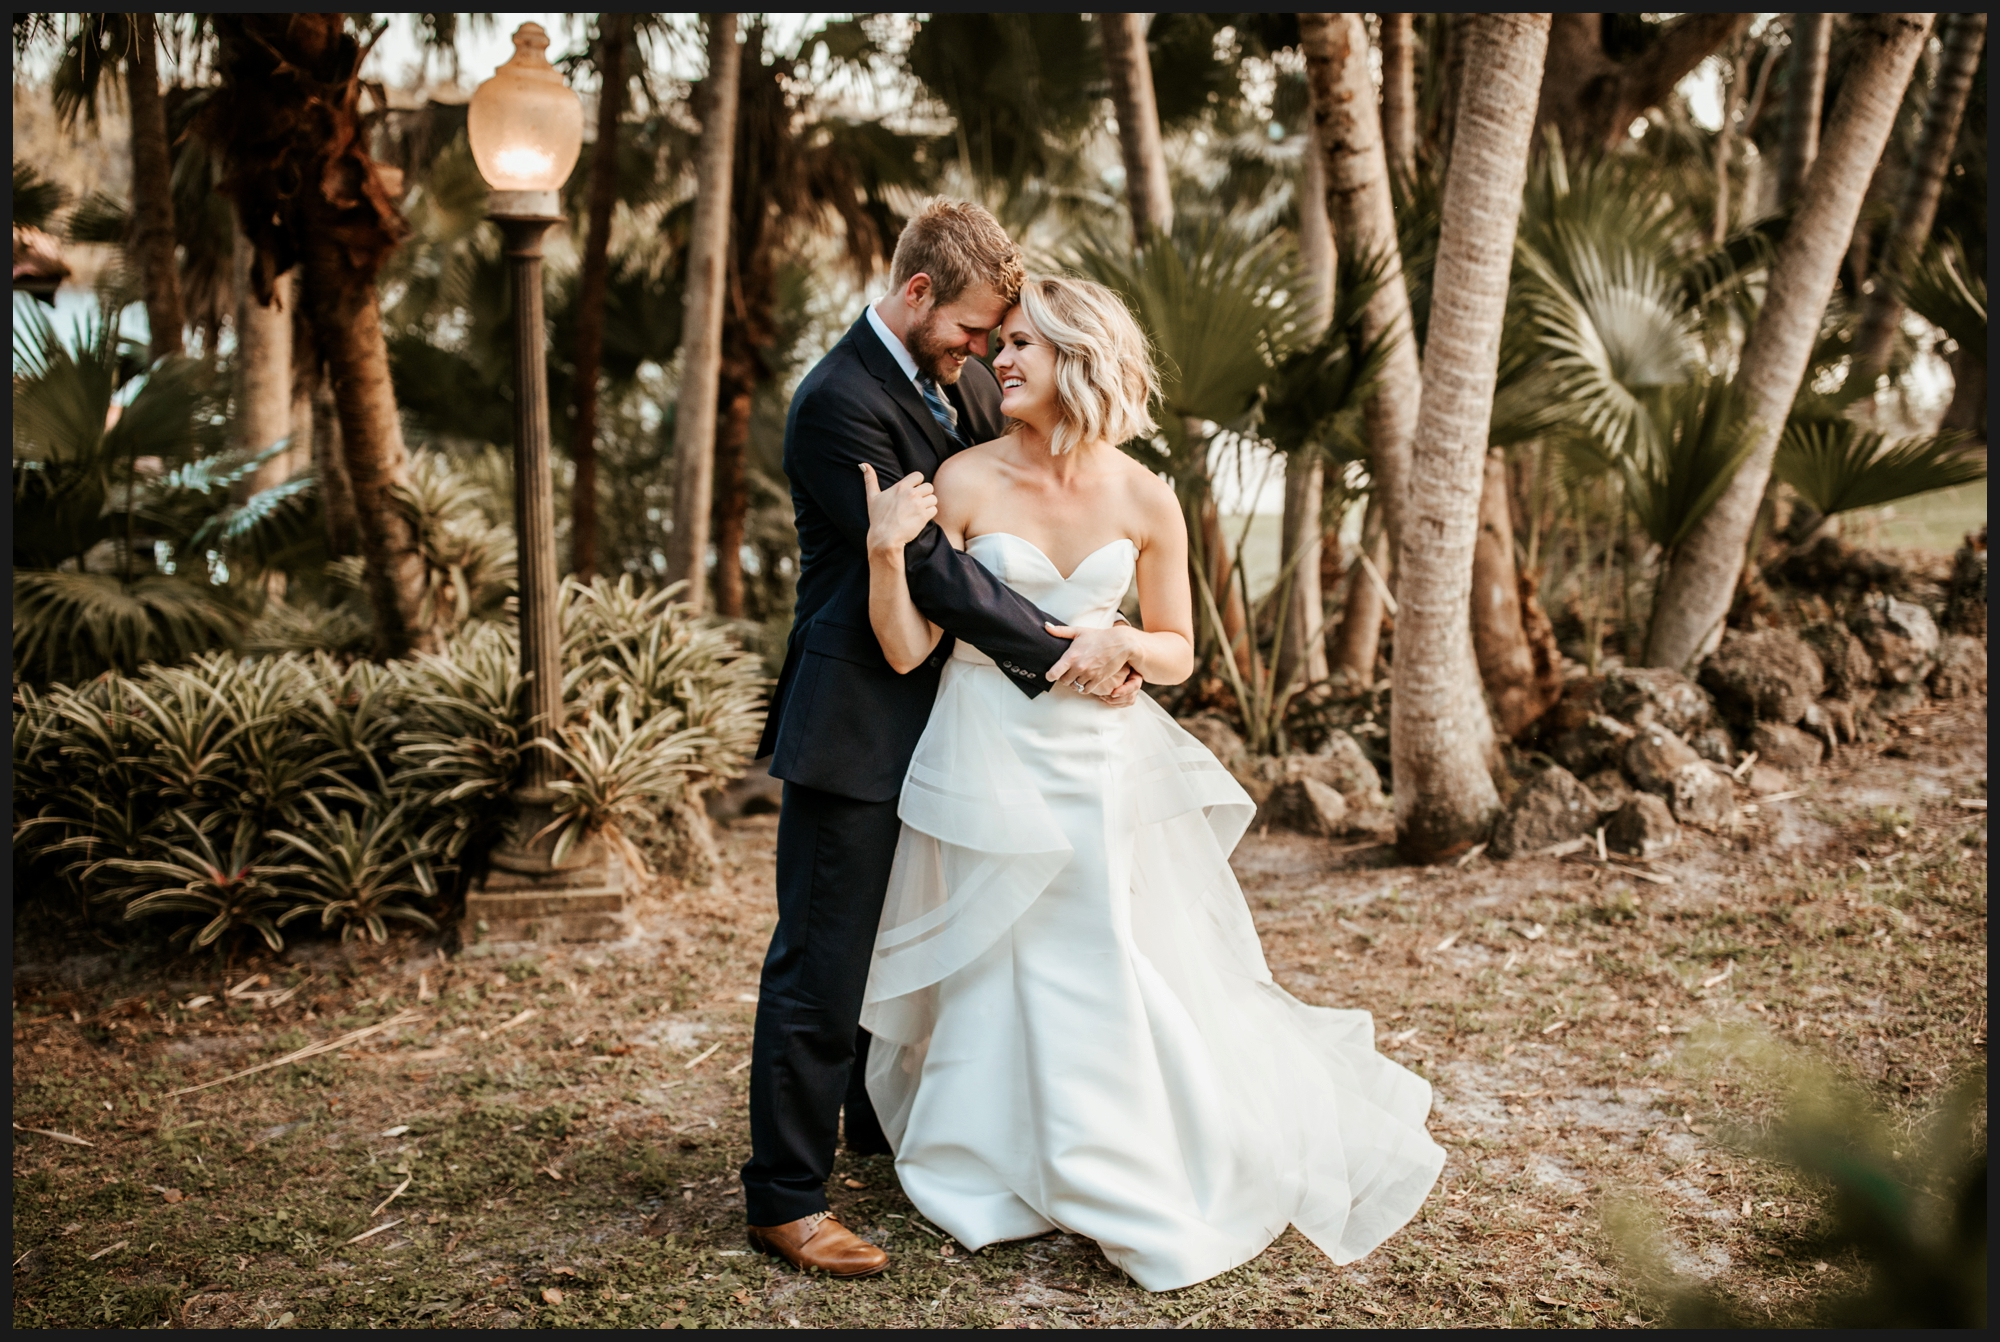 Orlando-Wedding-Photographer-destination-wedding-photographer-florida-wedding-photographer-bohemian-wedding-photographer_1523.jpg